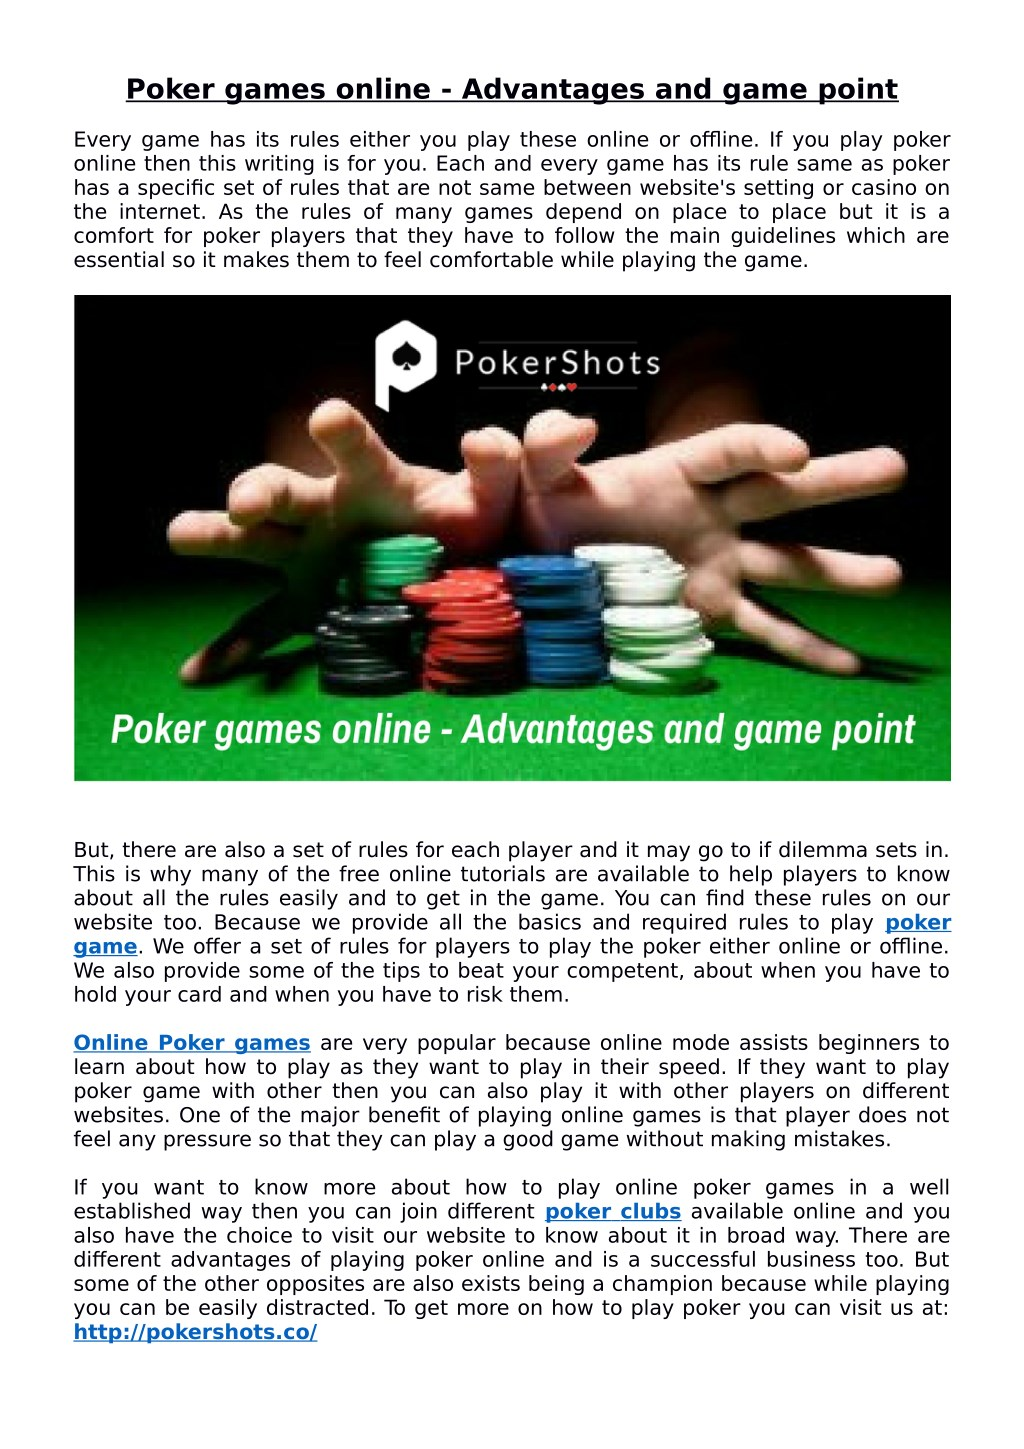 Ppt Poker Games Online Advantages And Game Point Powerpoint Presentation Id 7719319